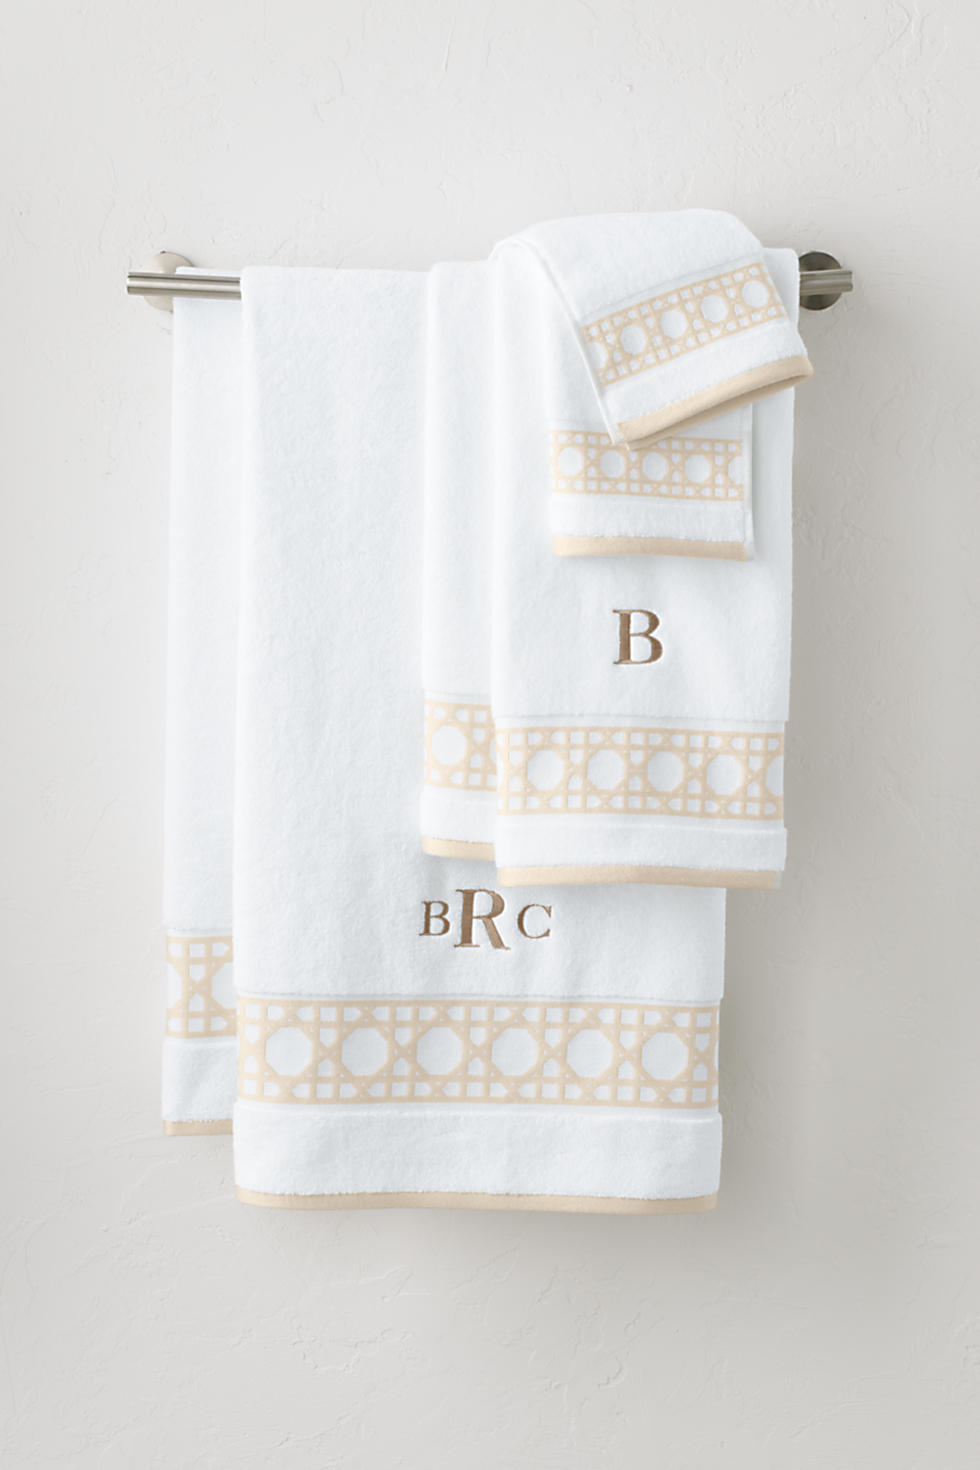 Lands' End Supima Cane Weave Jacquard Border Towel